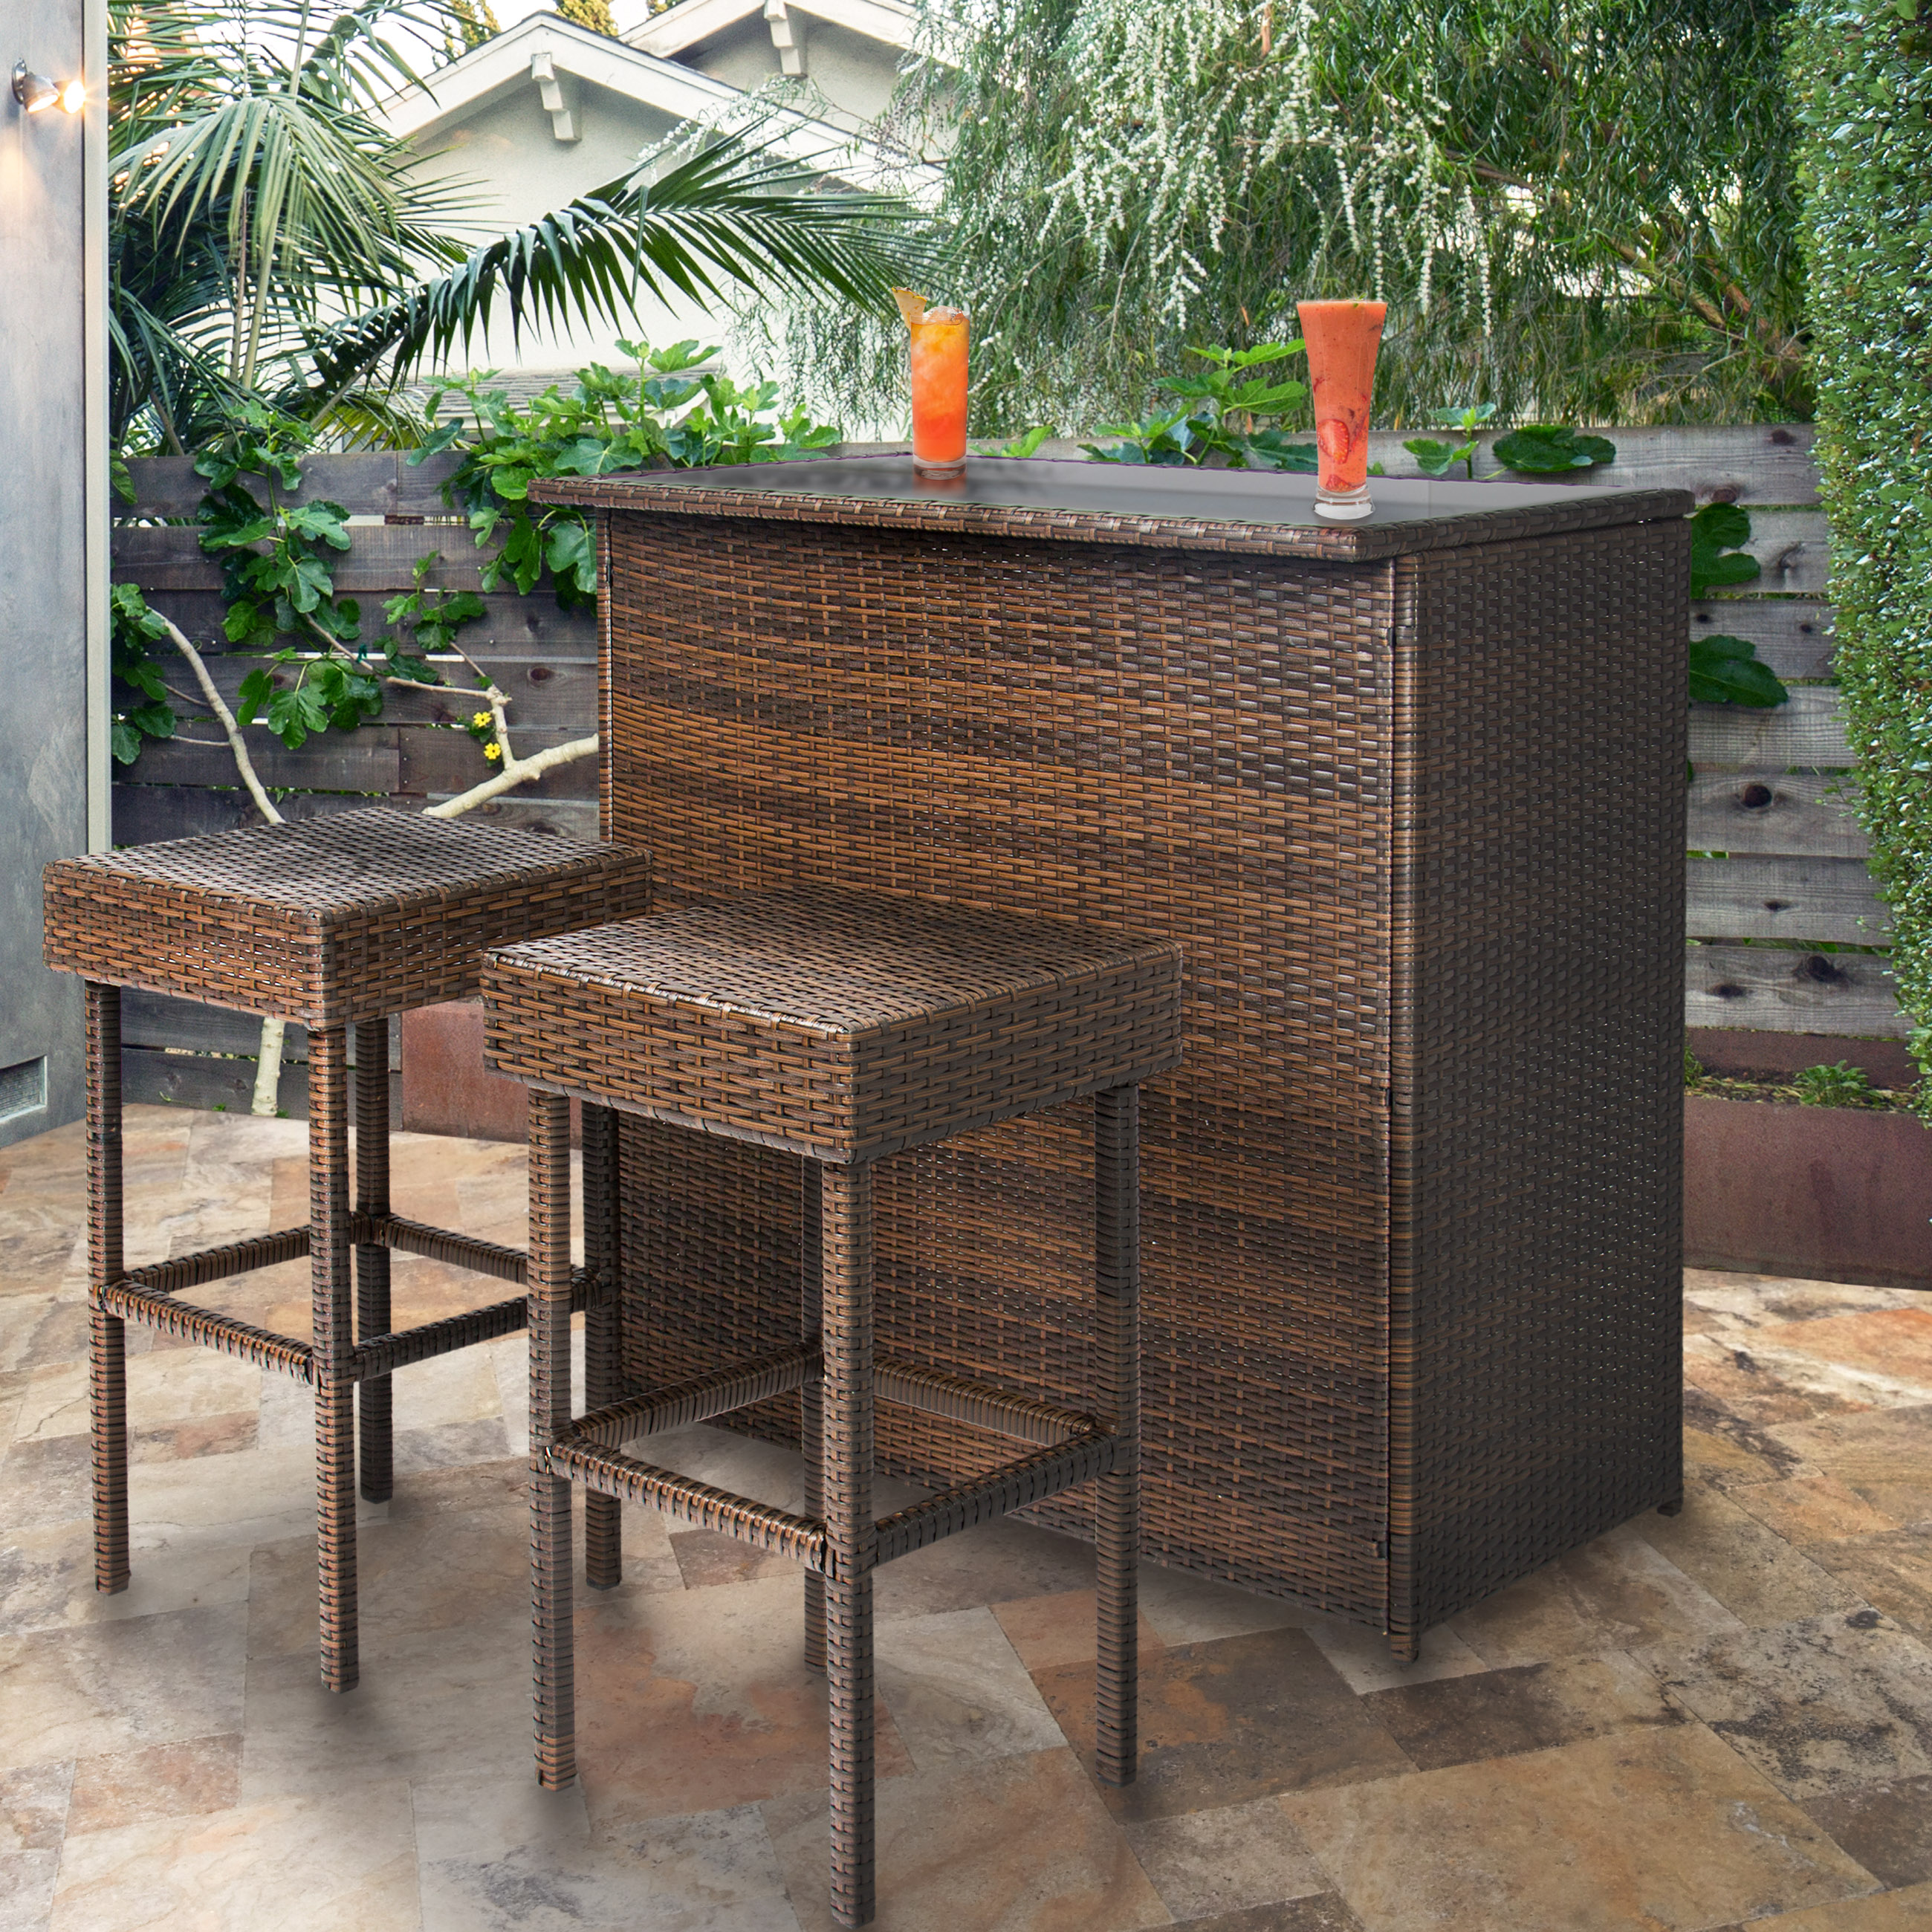 bar patio set good furniture covers elmundotienda best choice products cute small ideas accent table cabin target marble and wood coffee kitchen cupboards handbag storage ikea